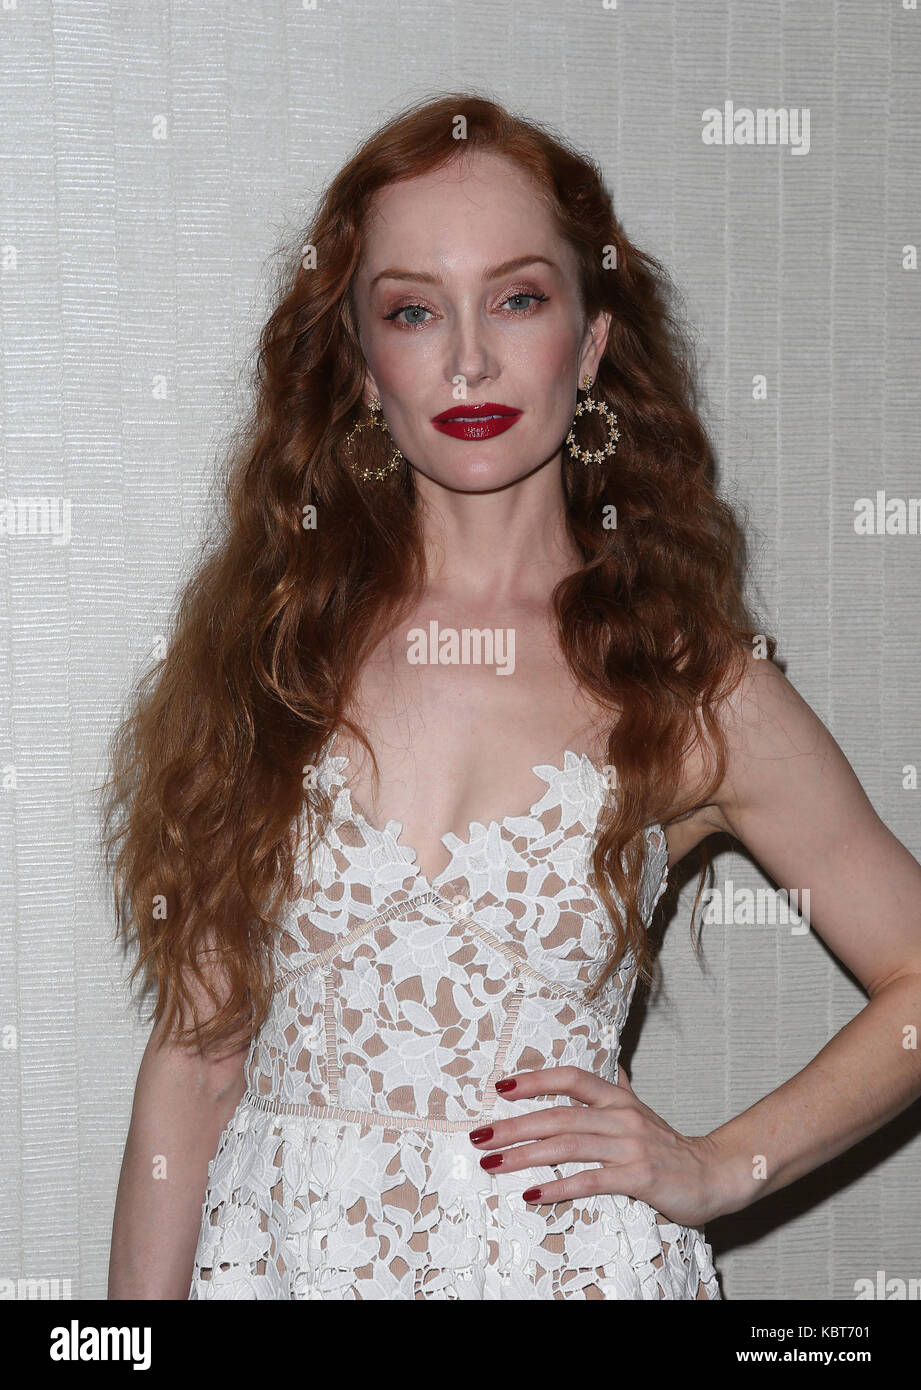 2019 Lotte Verbeek naked (77 photo), Sexy, Fappening, Instagram, butt 2019